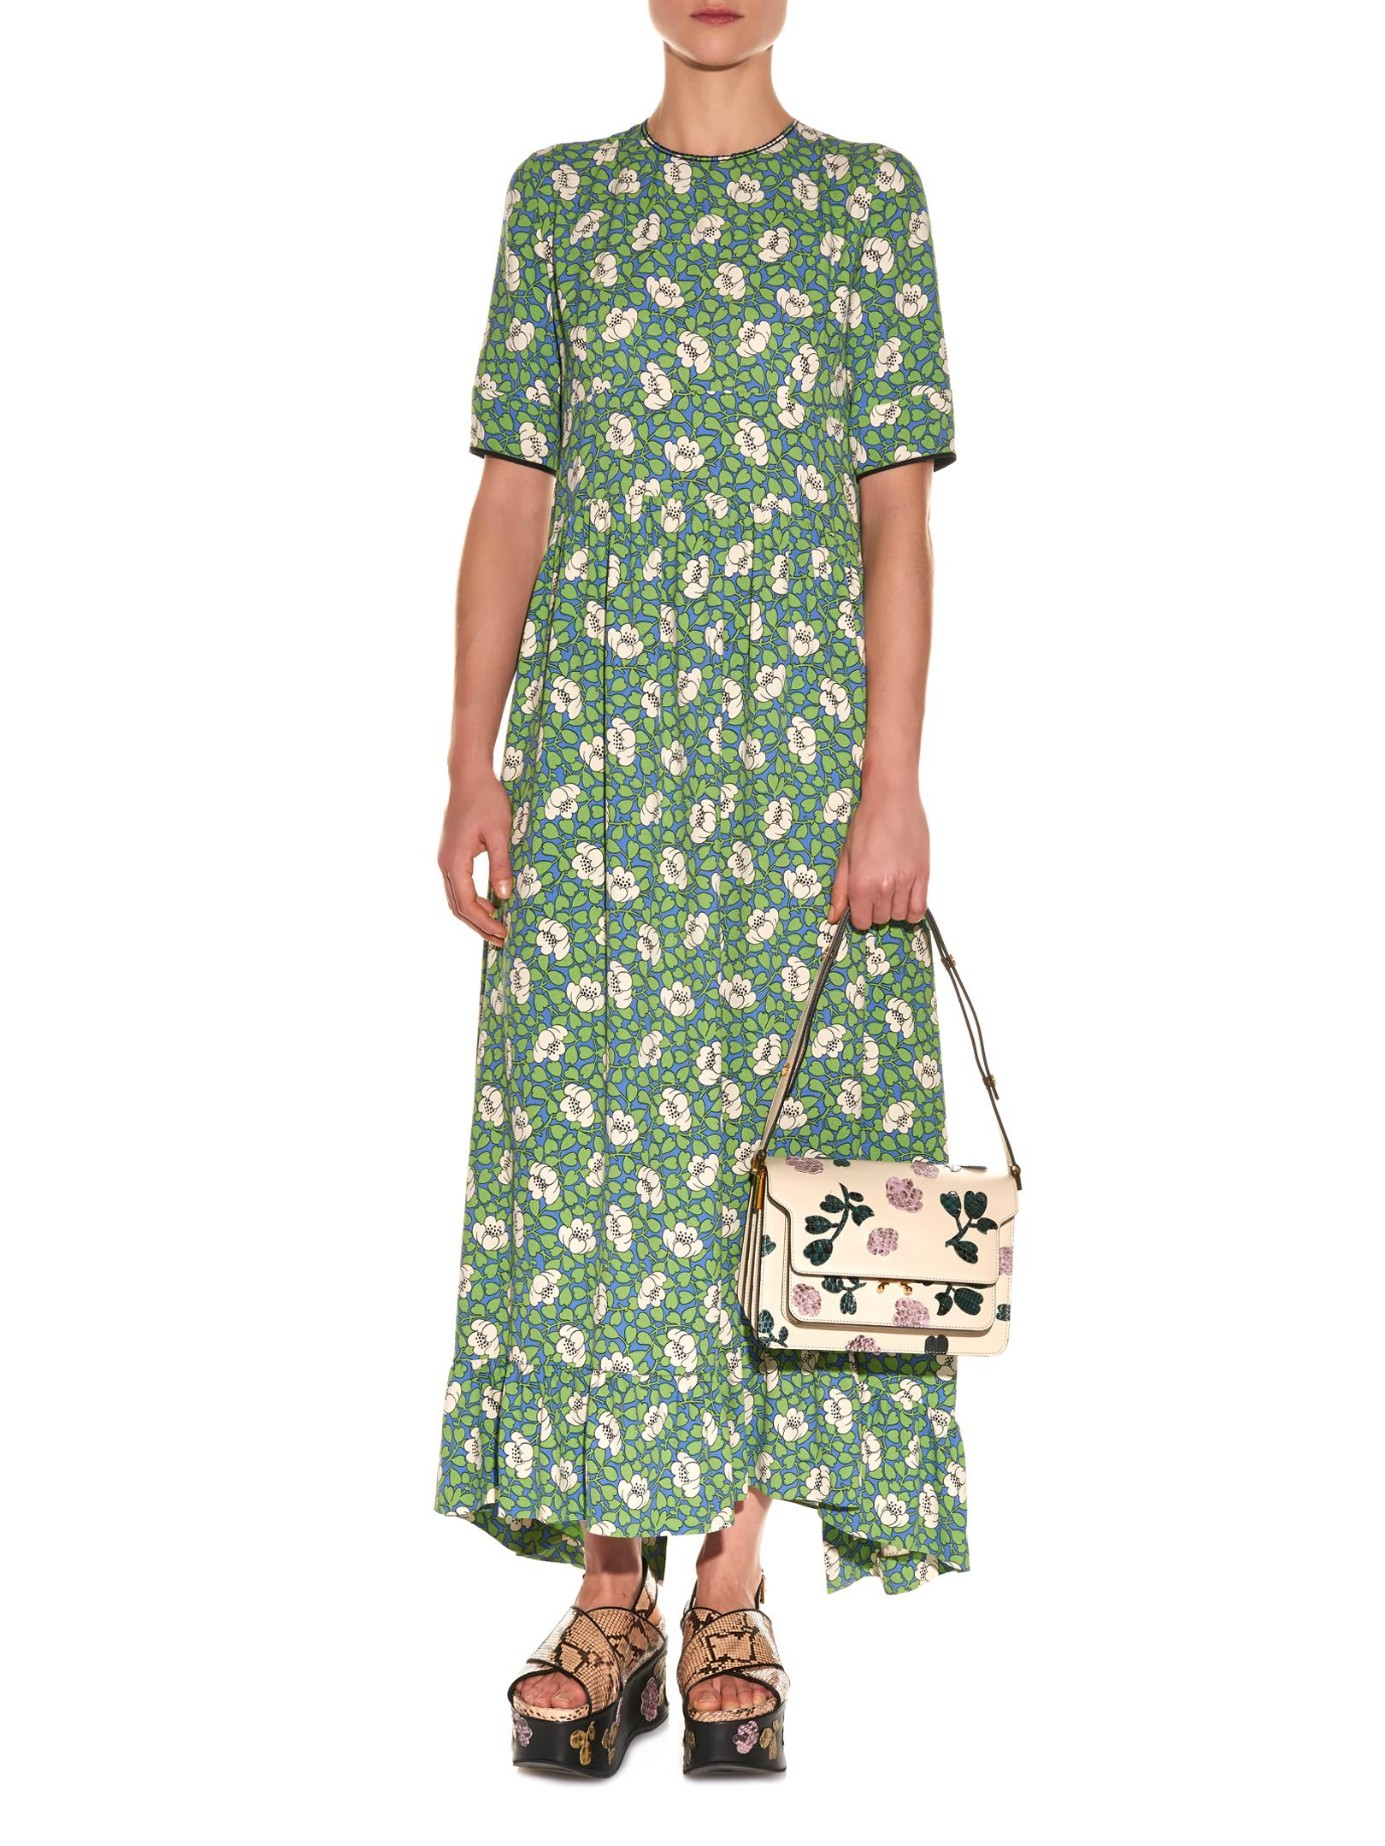 Marni floral printed dress High Quality Online Free Shipping Hot Sale Outlet Amazon Deals Cheap Price Outlet 100% Original p2B24Haz8n